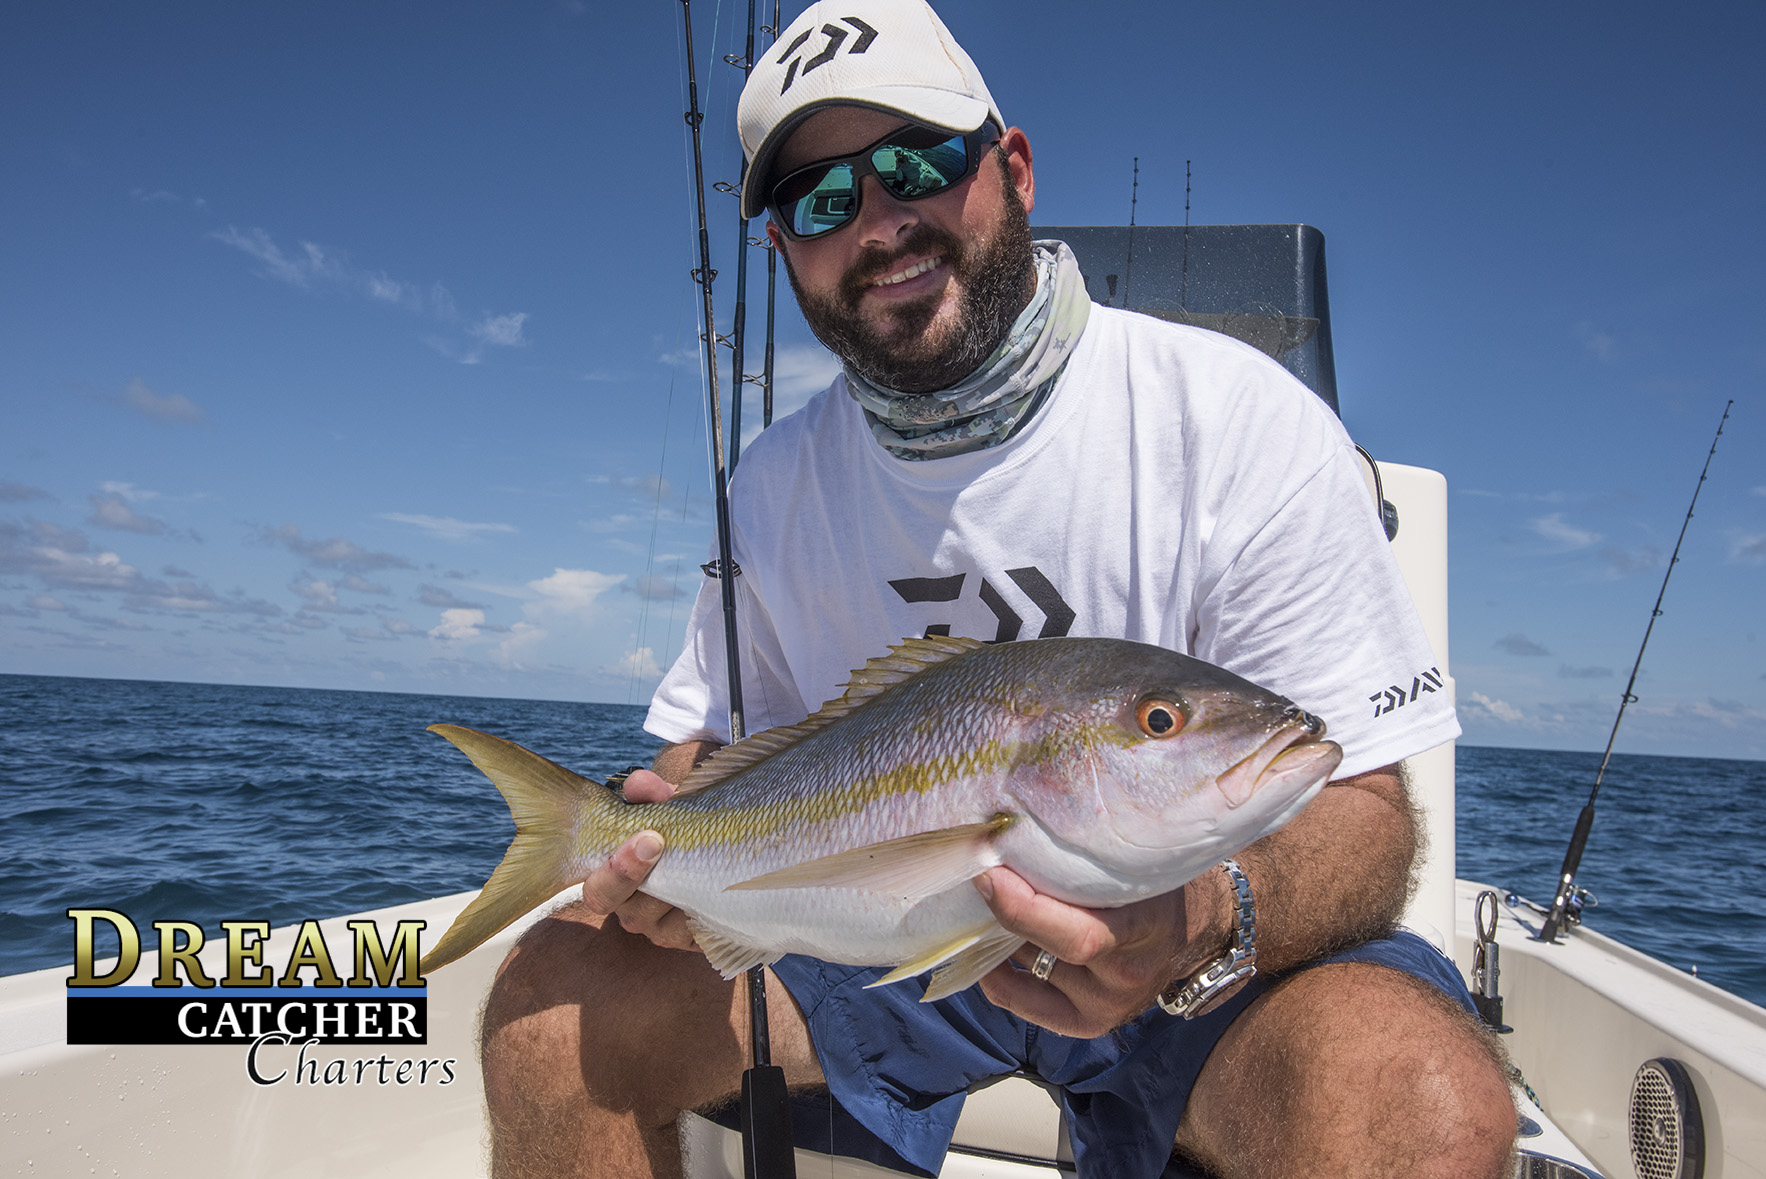 Snapper florida keys fishing report for Snapper fish florida